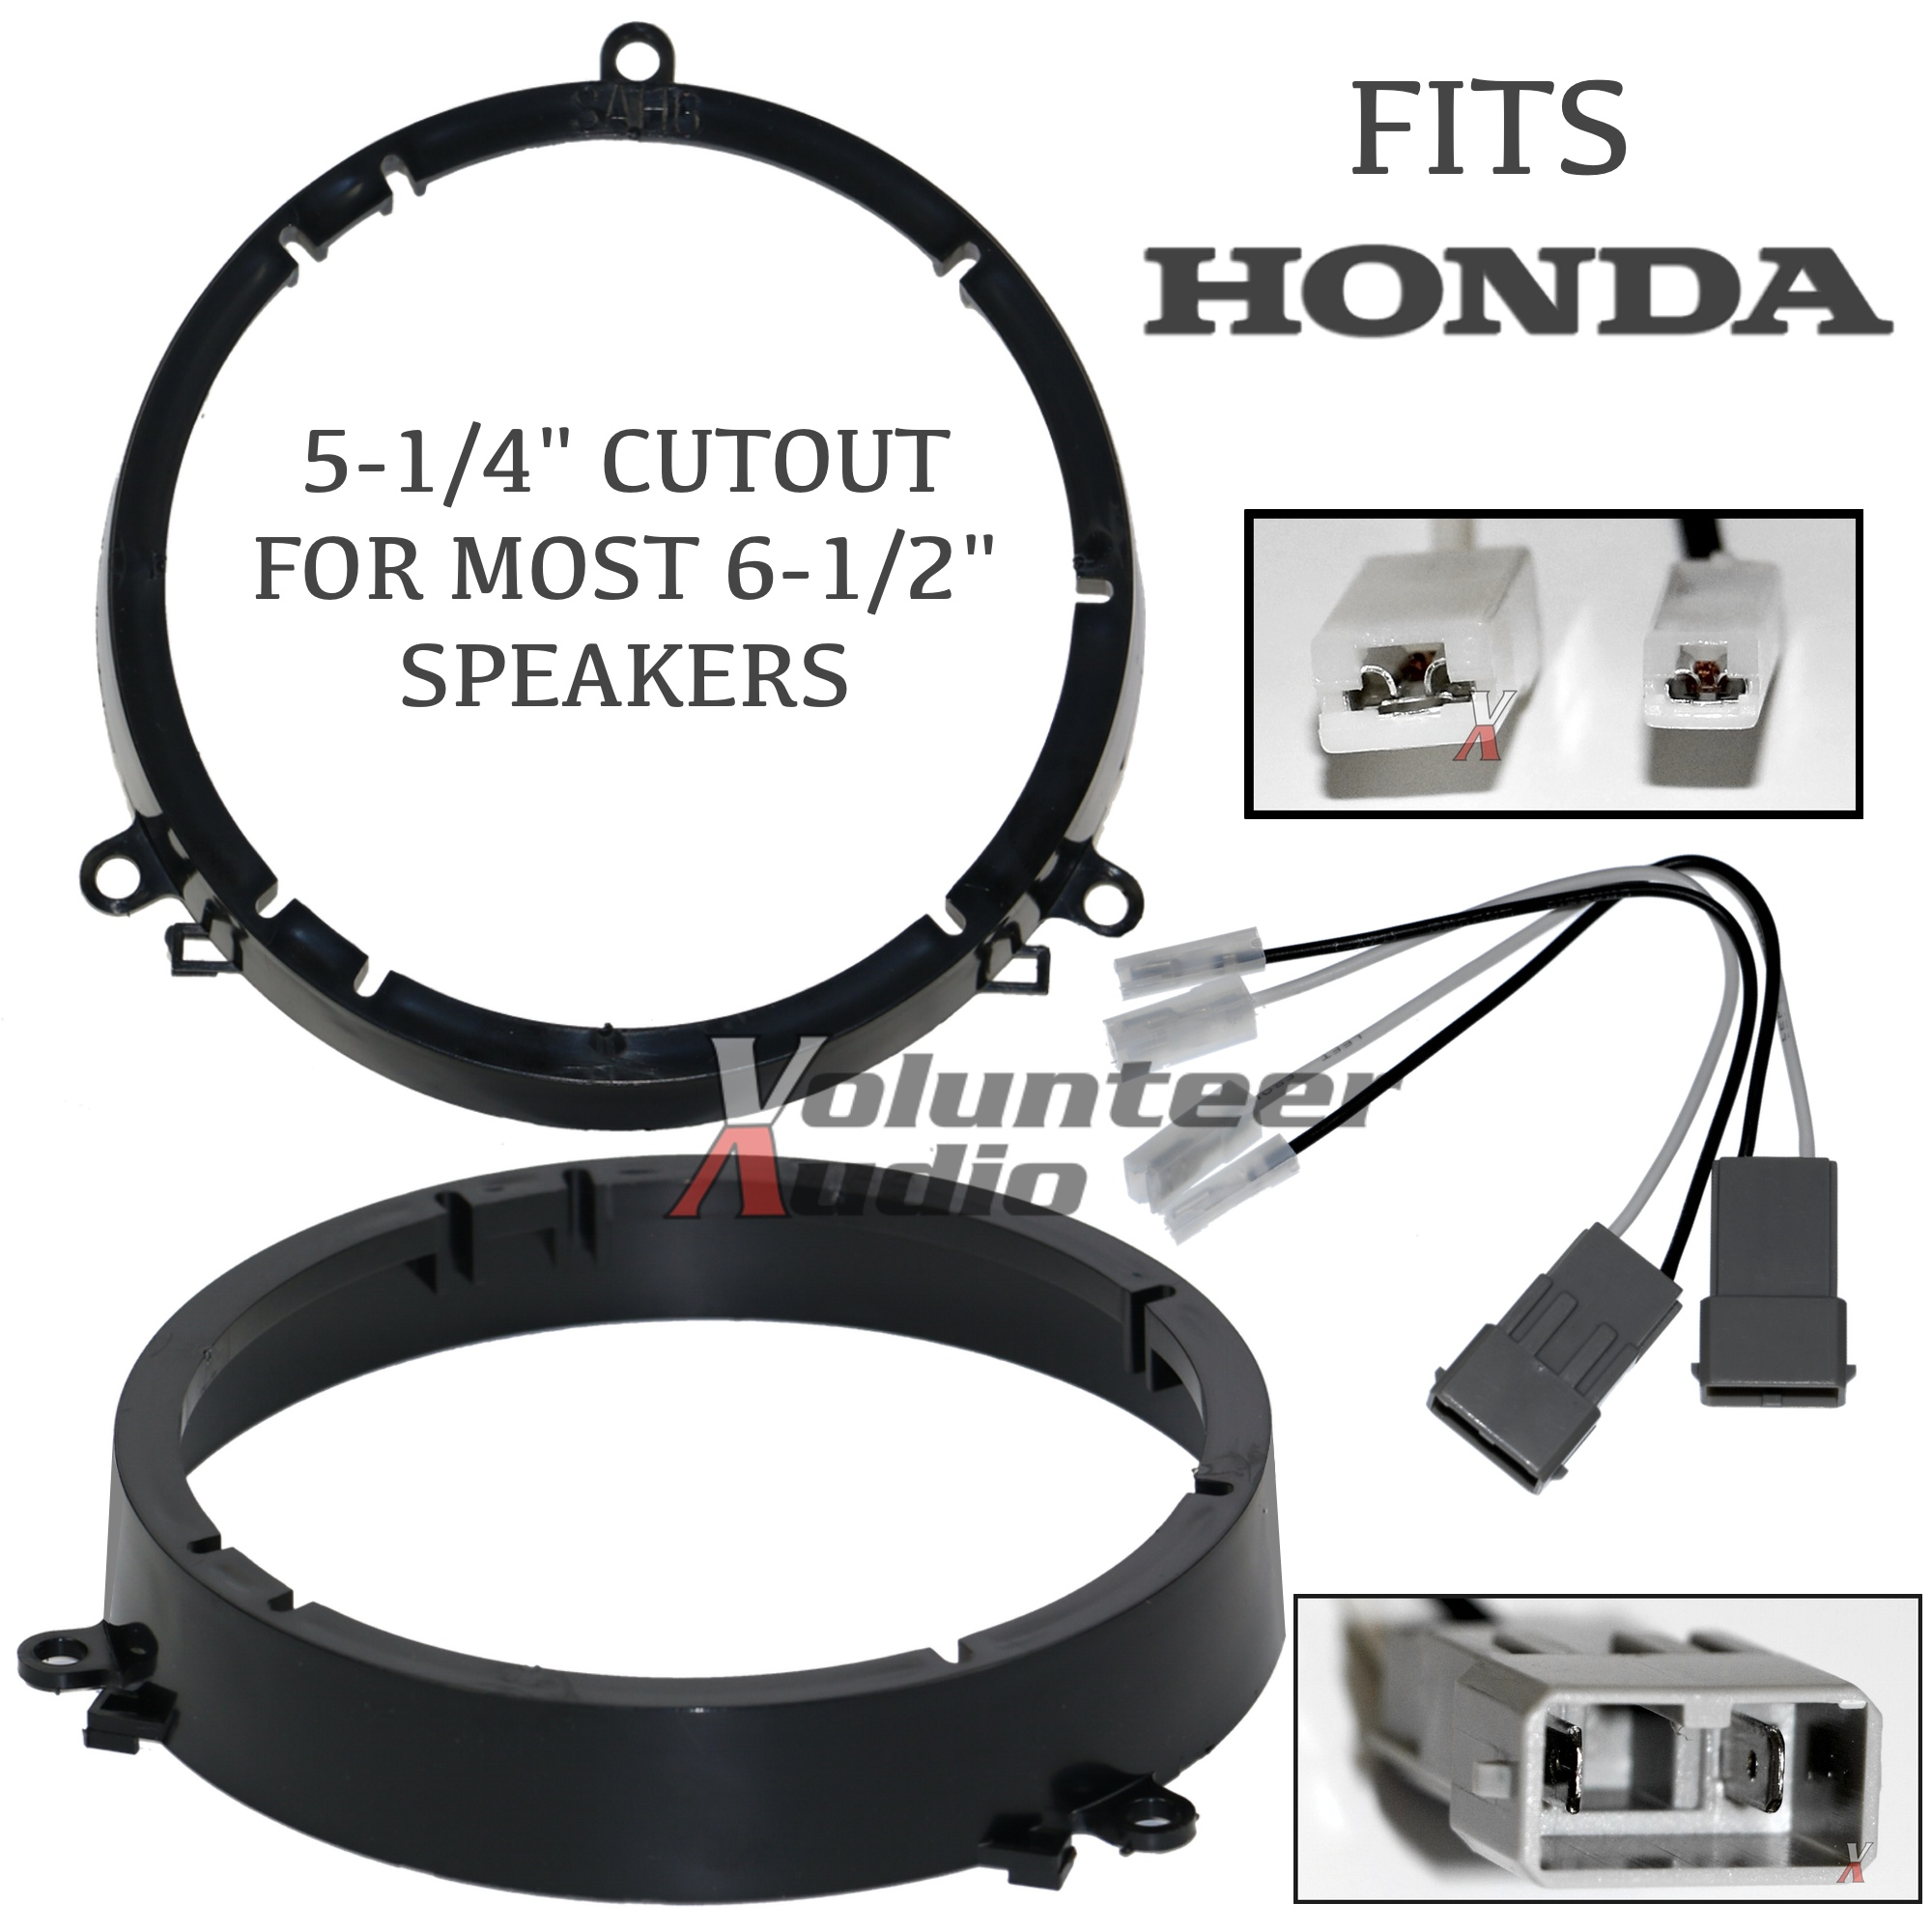 sah6 shha02b sah6 2001 2005 honda civic speaker adapter front location with honda civic speaker wire harness at bayanpartner.co